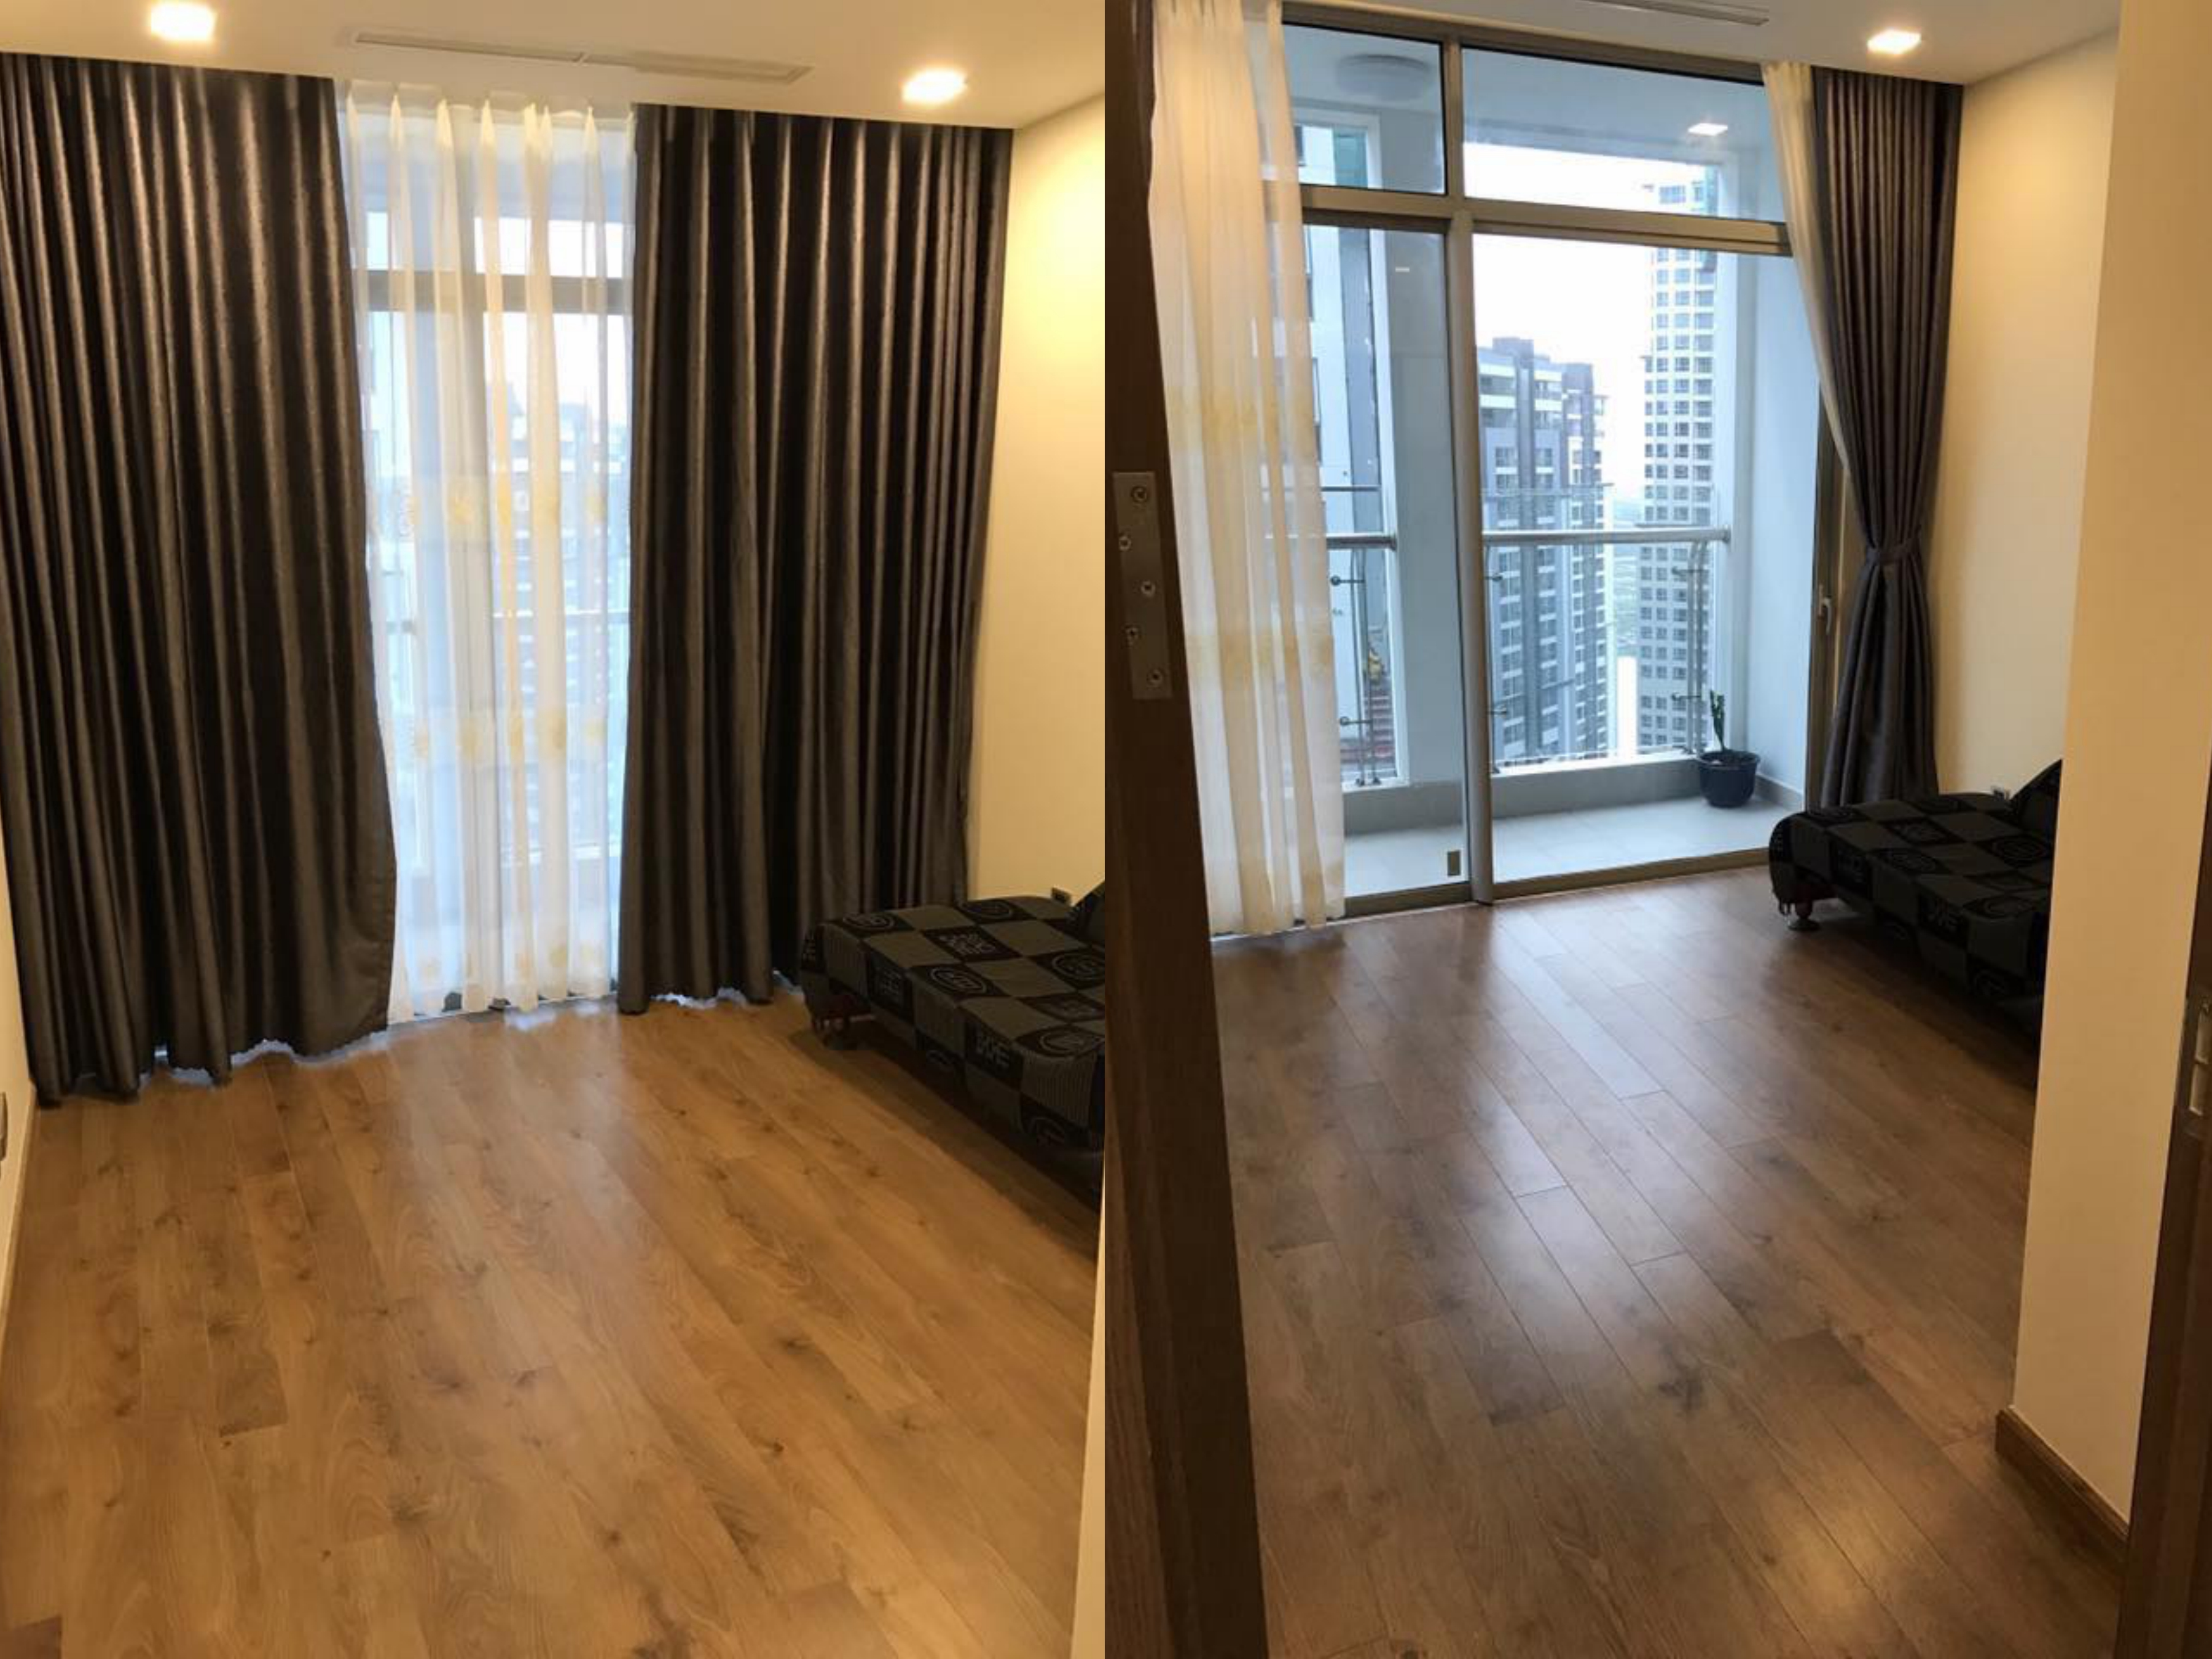 BT105P764 - Vinhomes Central Park Apartments For Rent & Sale In Ho Chi Minh City - 3 bedroom